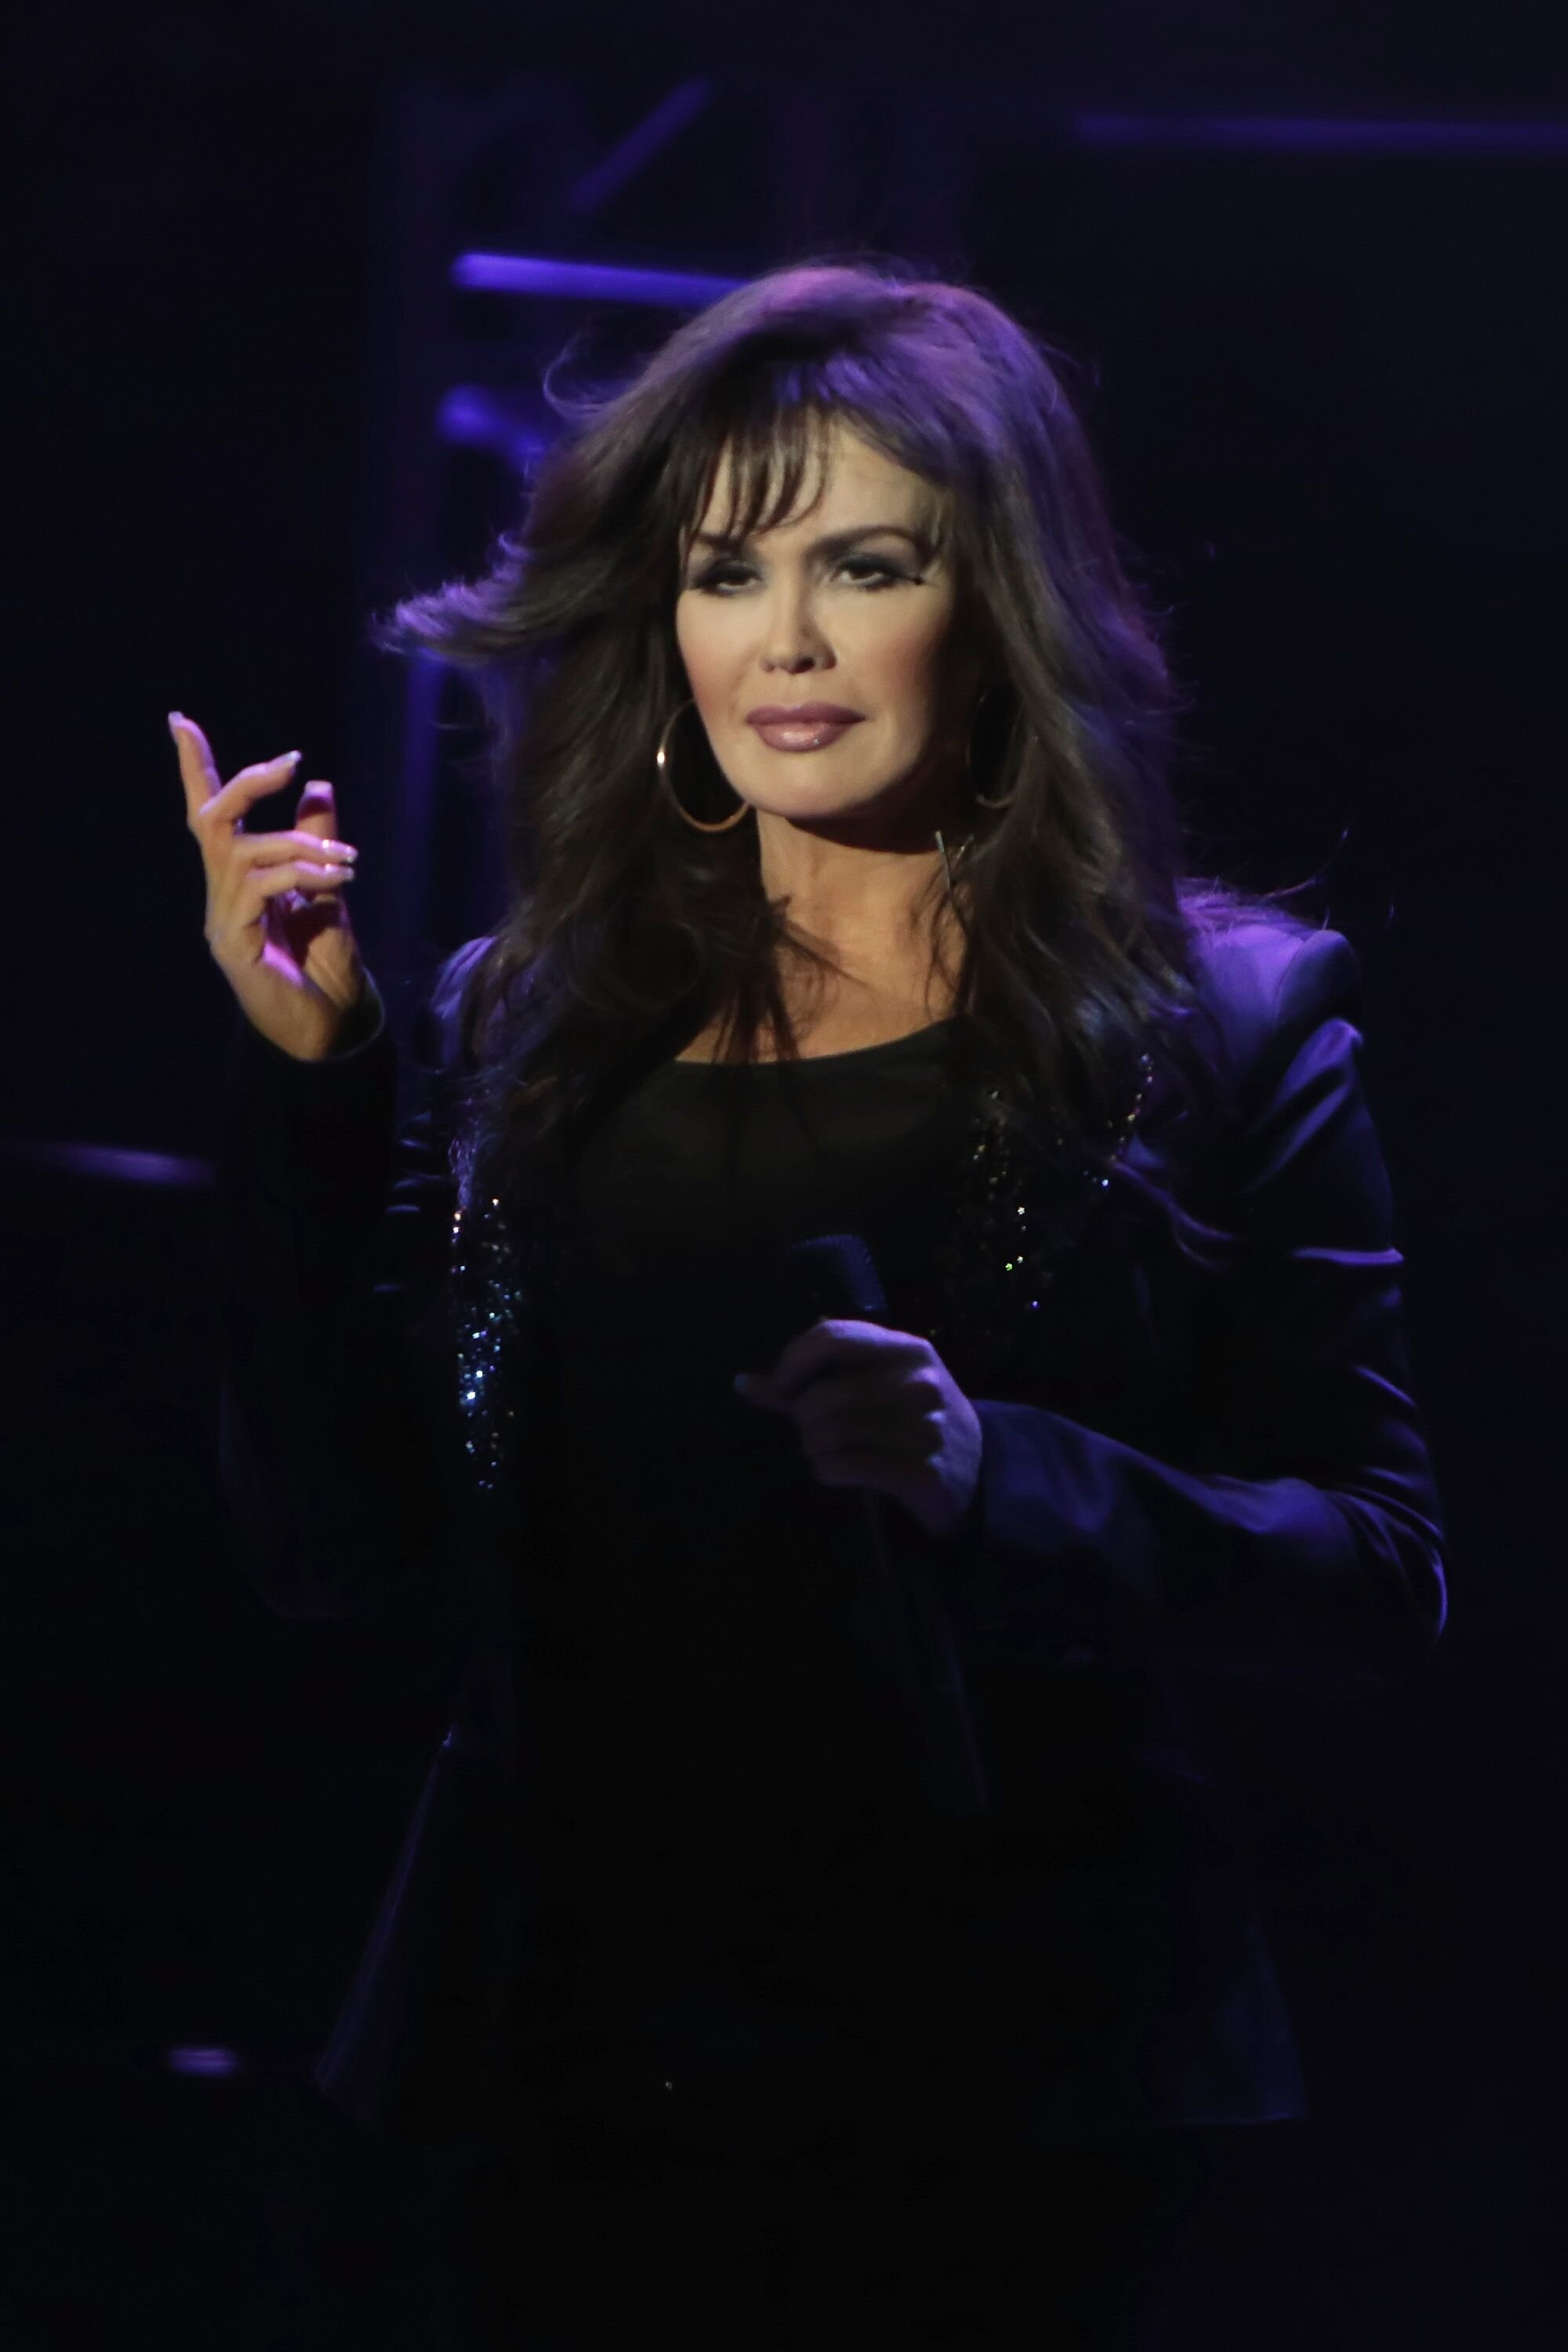 Marie Osmond performs at Borgata Hotel Casino & Spa on March 13, 2015 in Atlantic City, New Jersey| Photo: Donald Kravitz/Getty Images